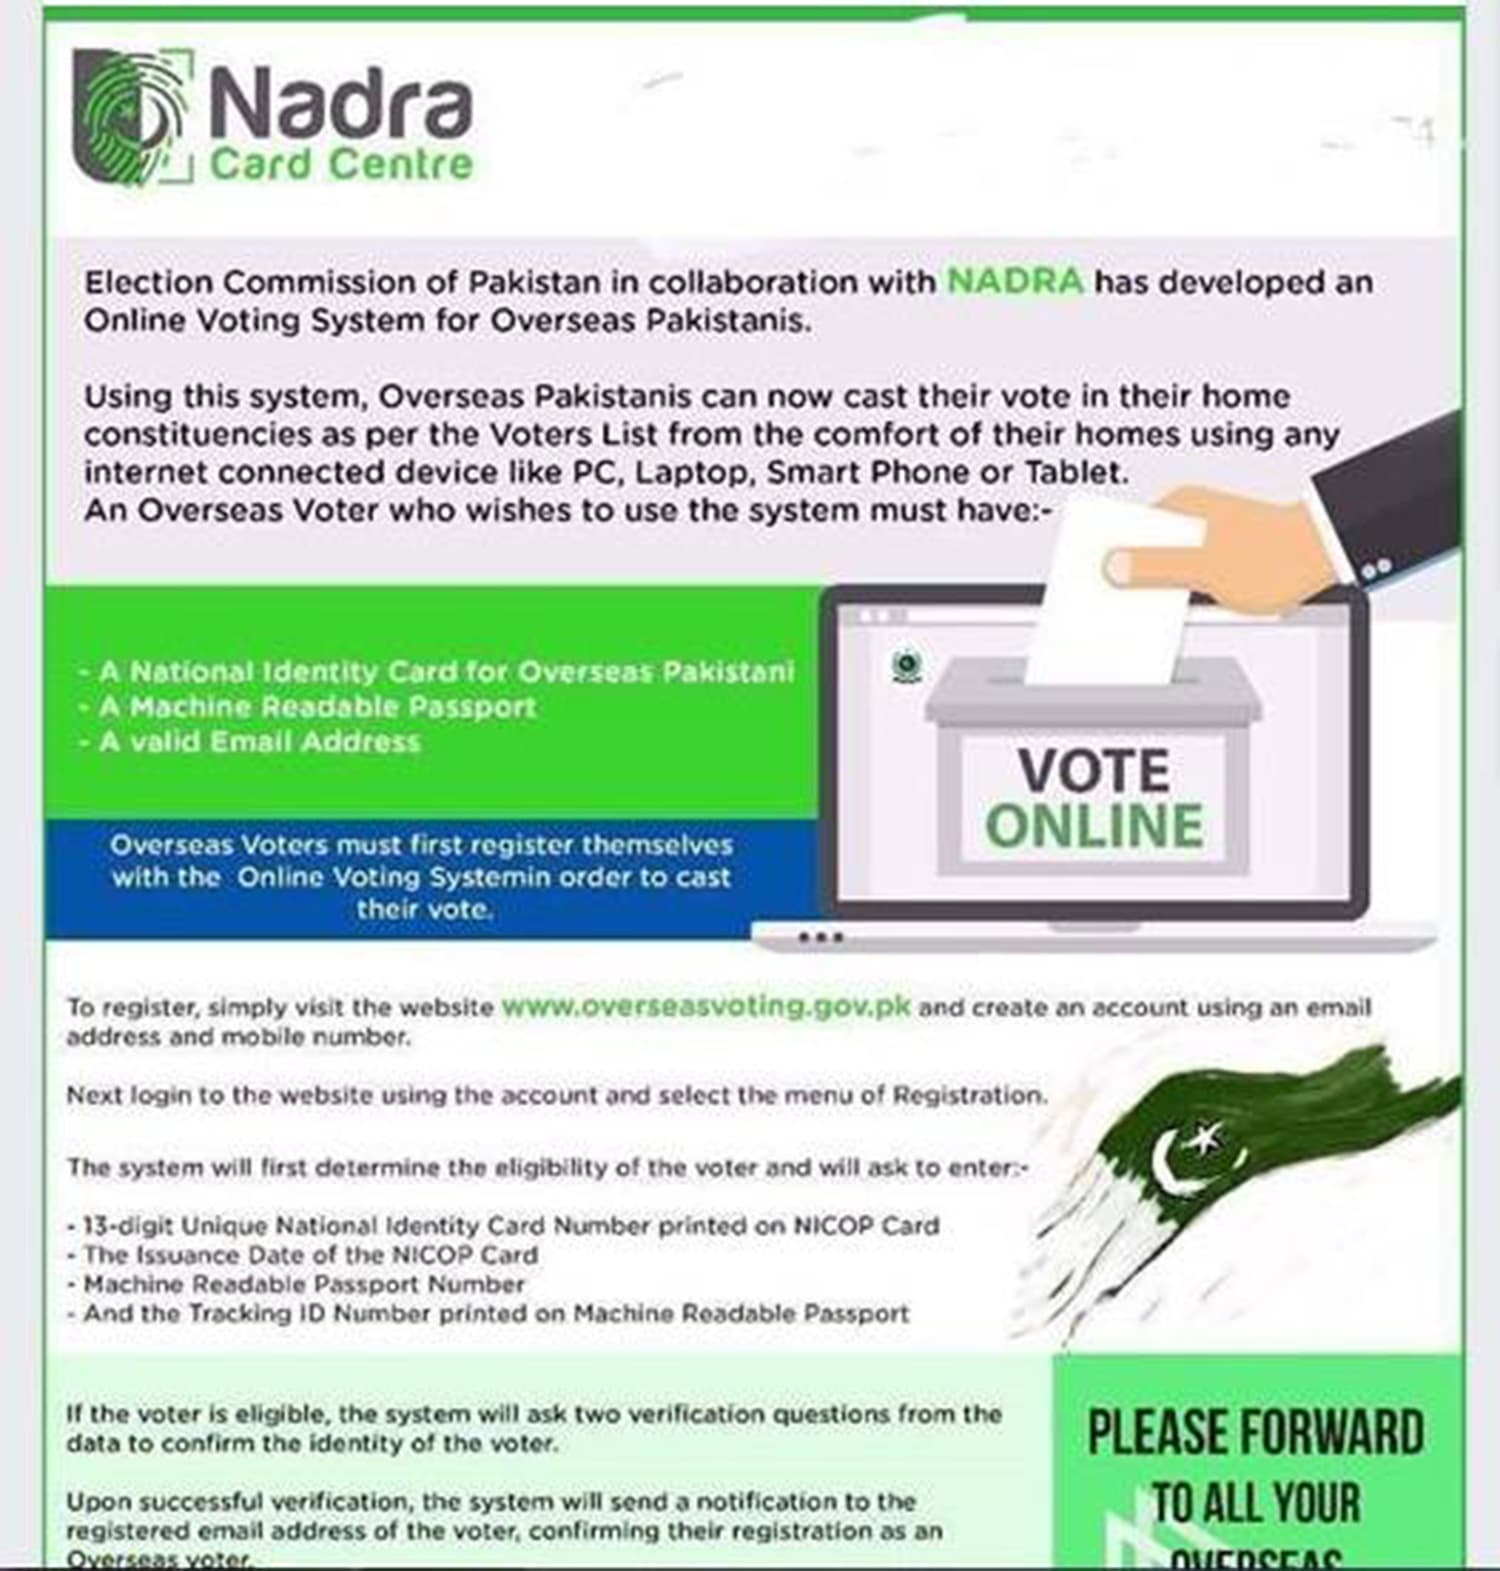 Do not fall for such fake posts. There is no mechanism for overseas Pakistanis to vote.